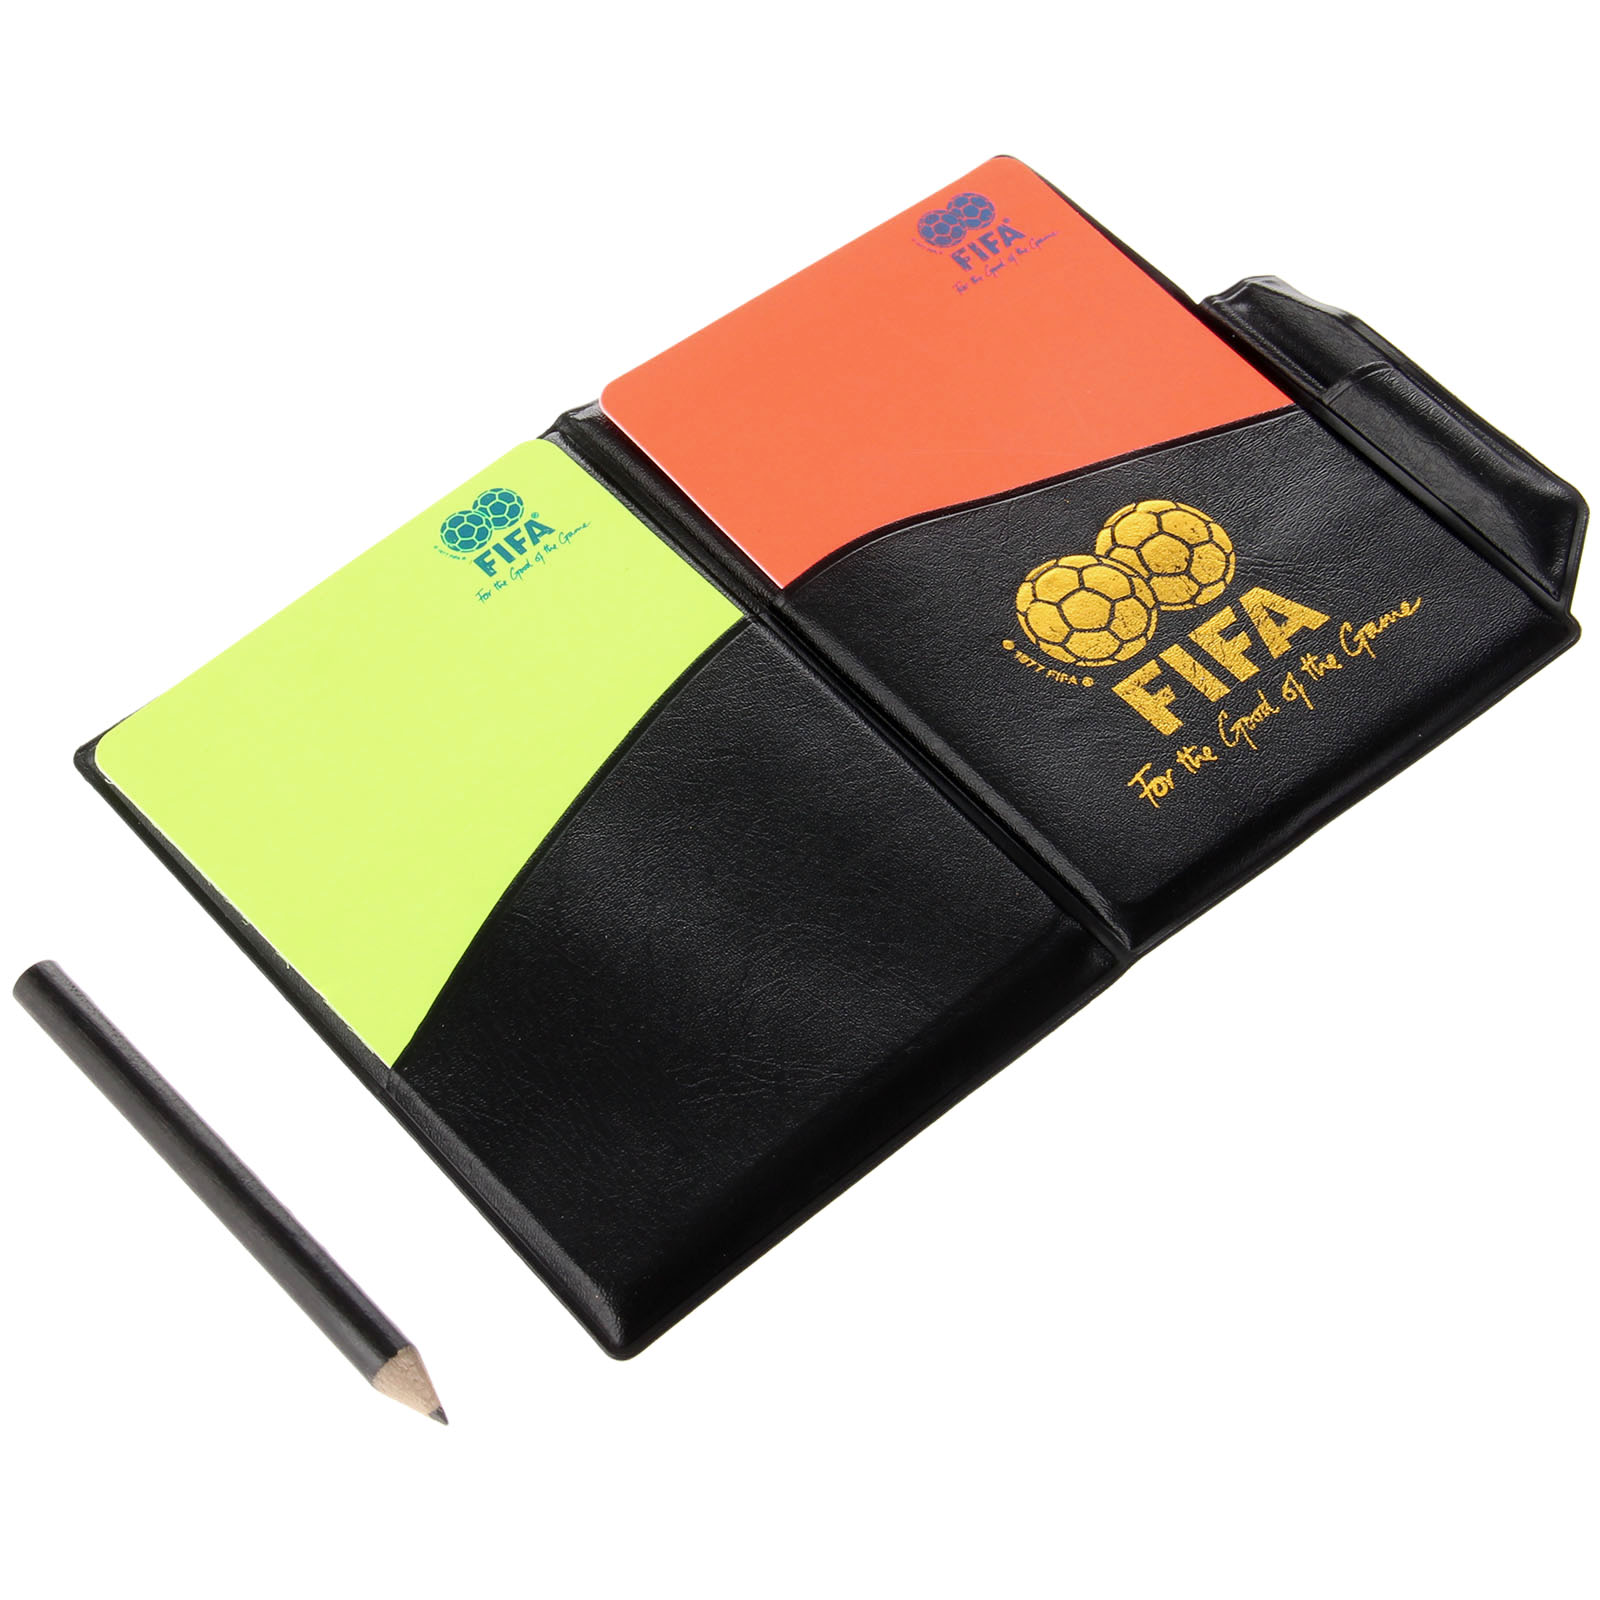 1PC Soccer Match Referee Supplies Red Card/Yellow Card Referee Game Appliances With Holster+Pen Football Equipment Pencil Wallet(China (Mainland))